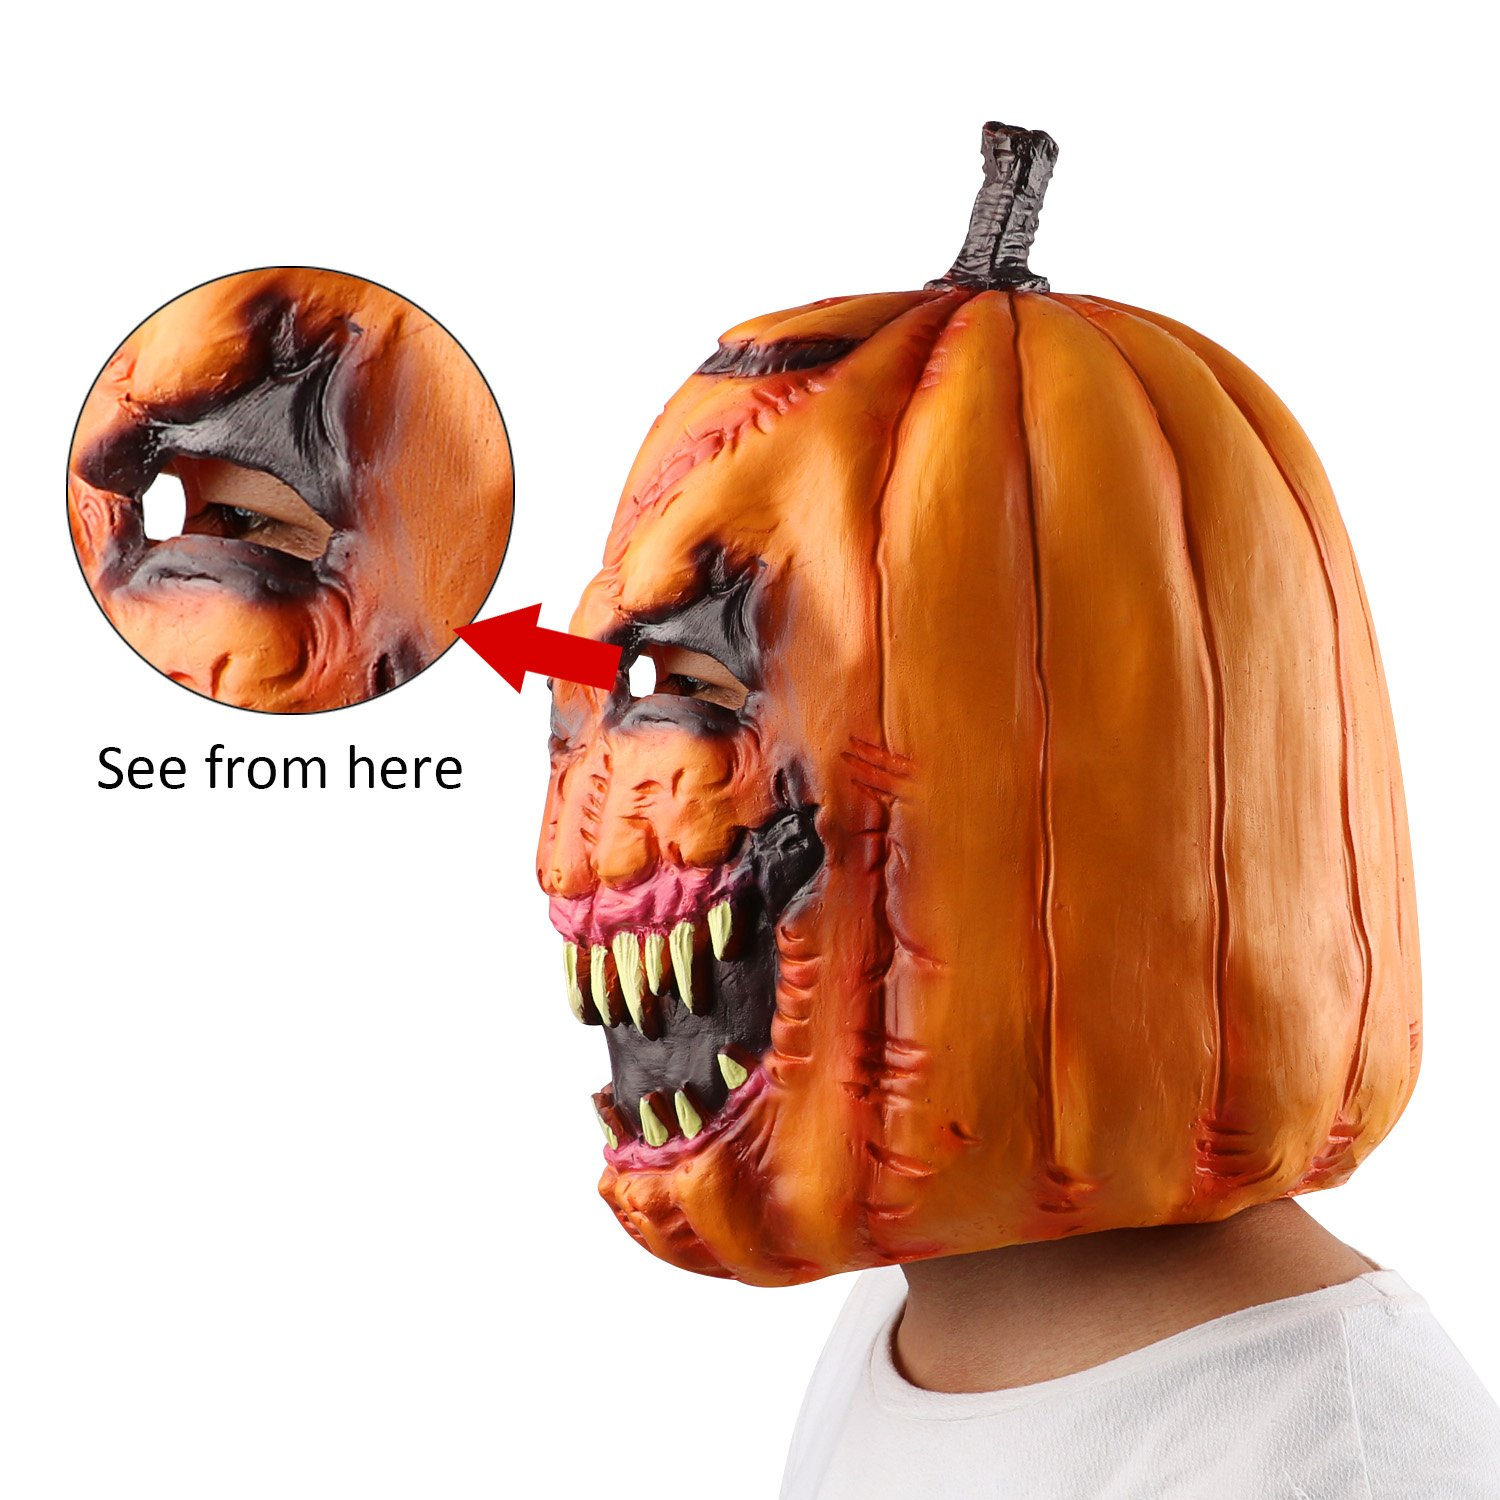 Pumpkin Head Mask,Monstleo Novelty Halloween Costume Party Latex Mask for Masquerade/Birthday Parties,Carnival Decorations